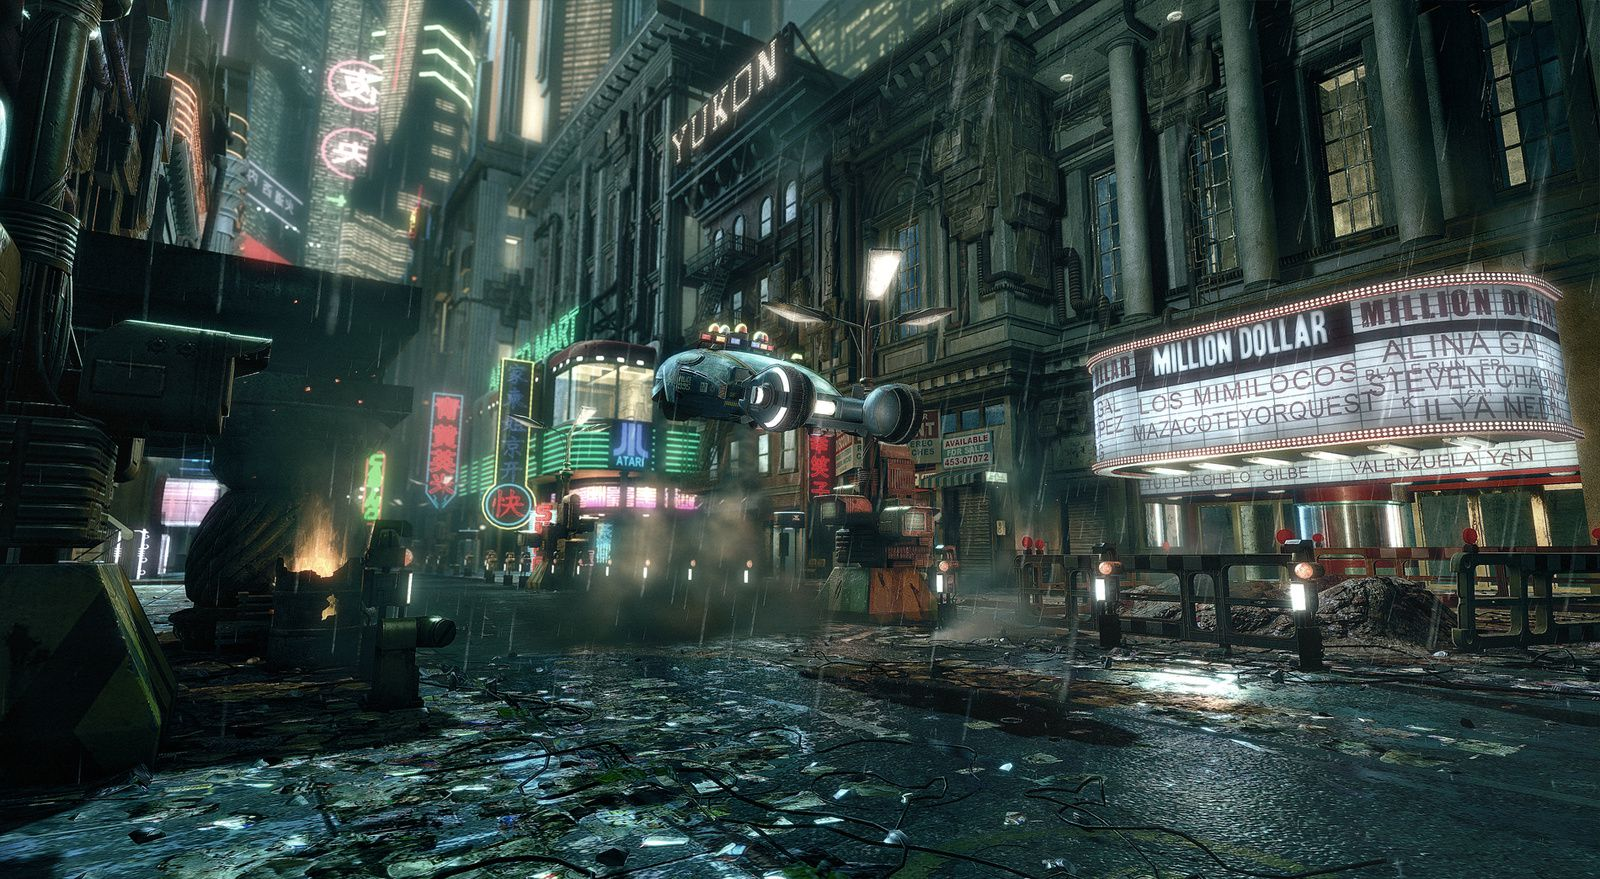 Le cyberpunk : science fiction et critique sociale